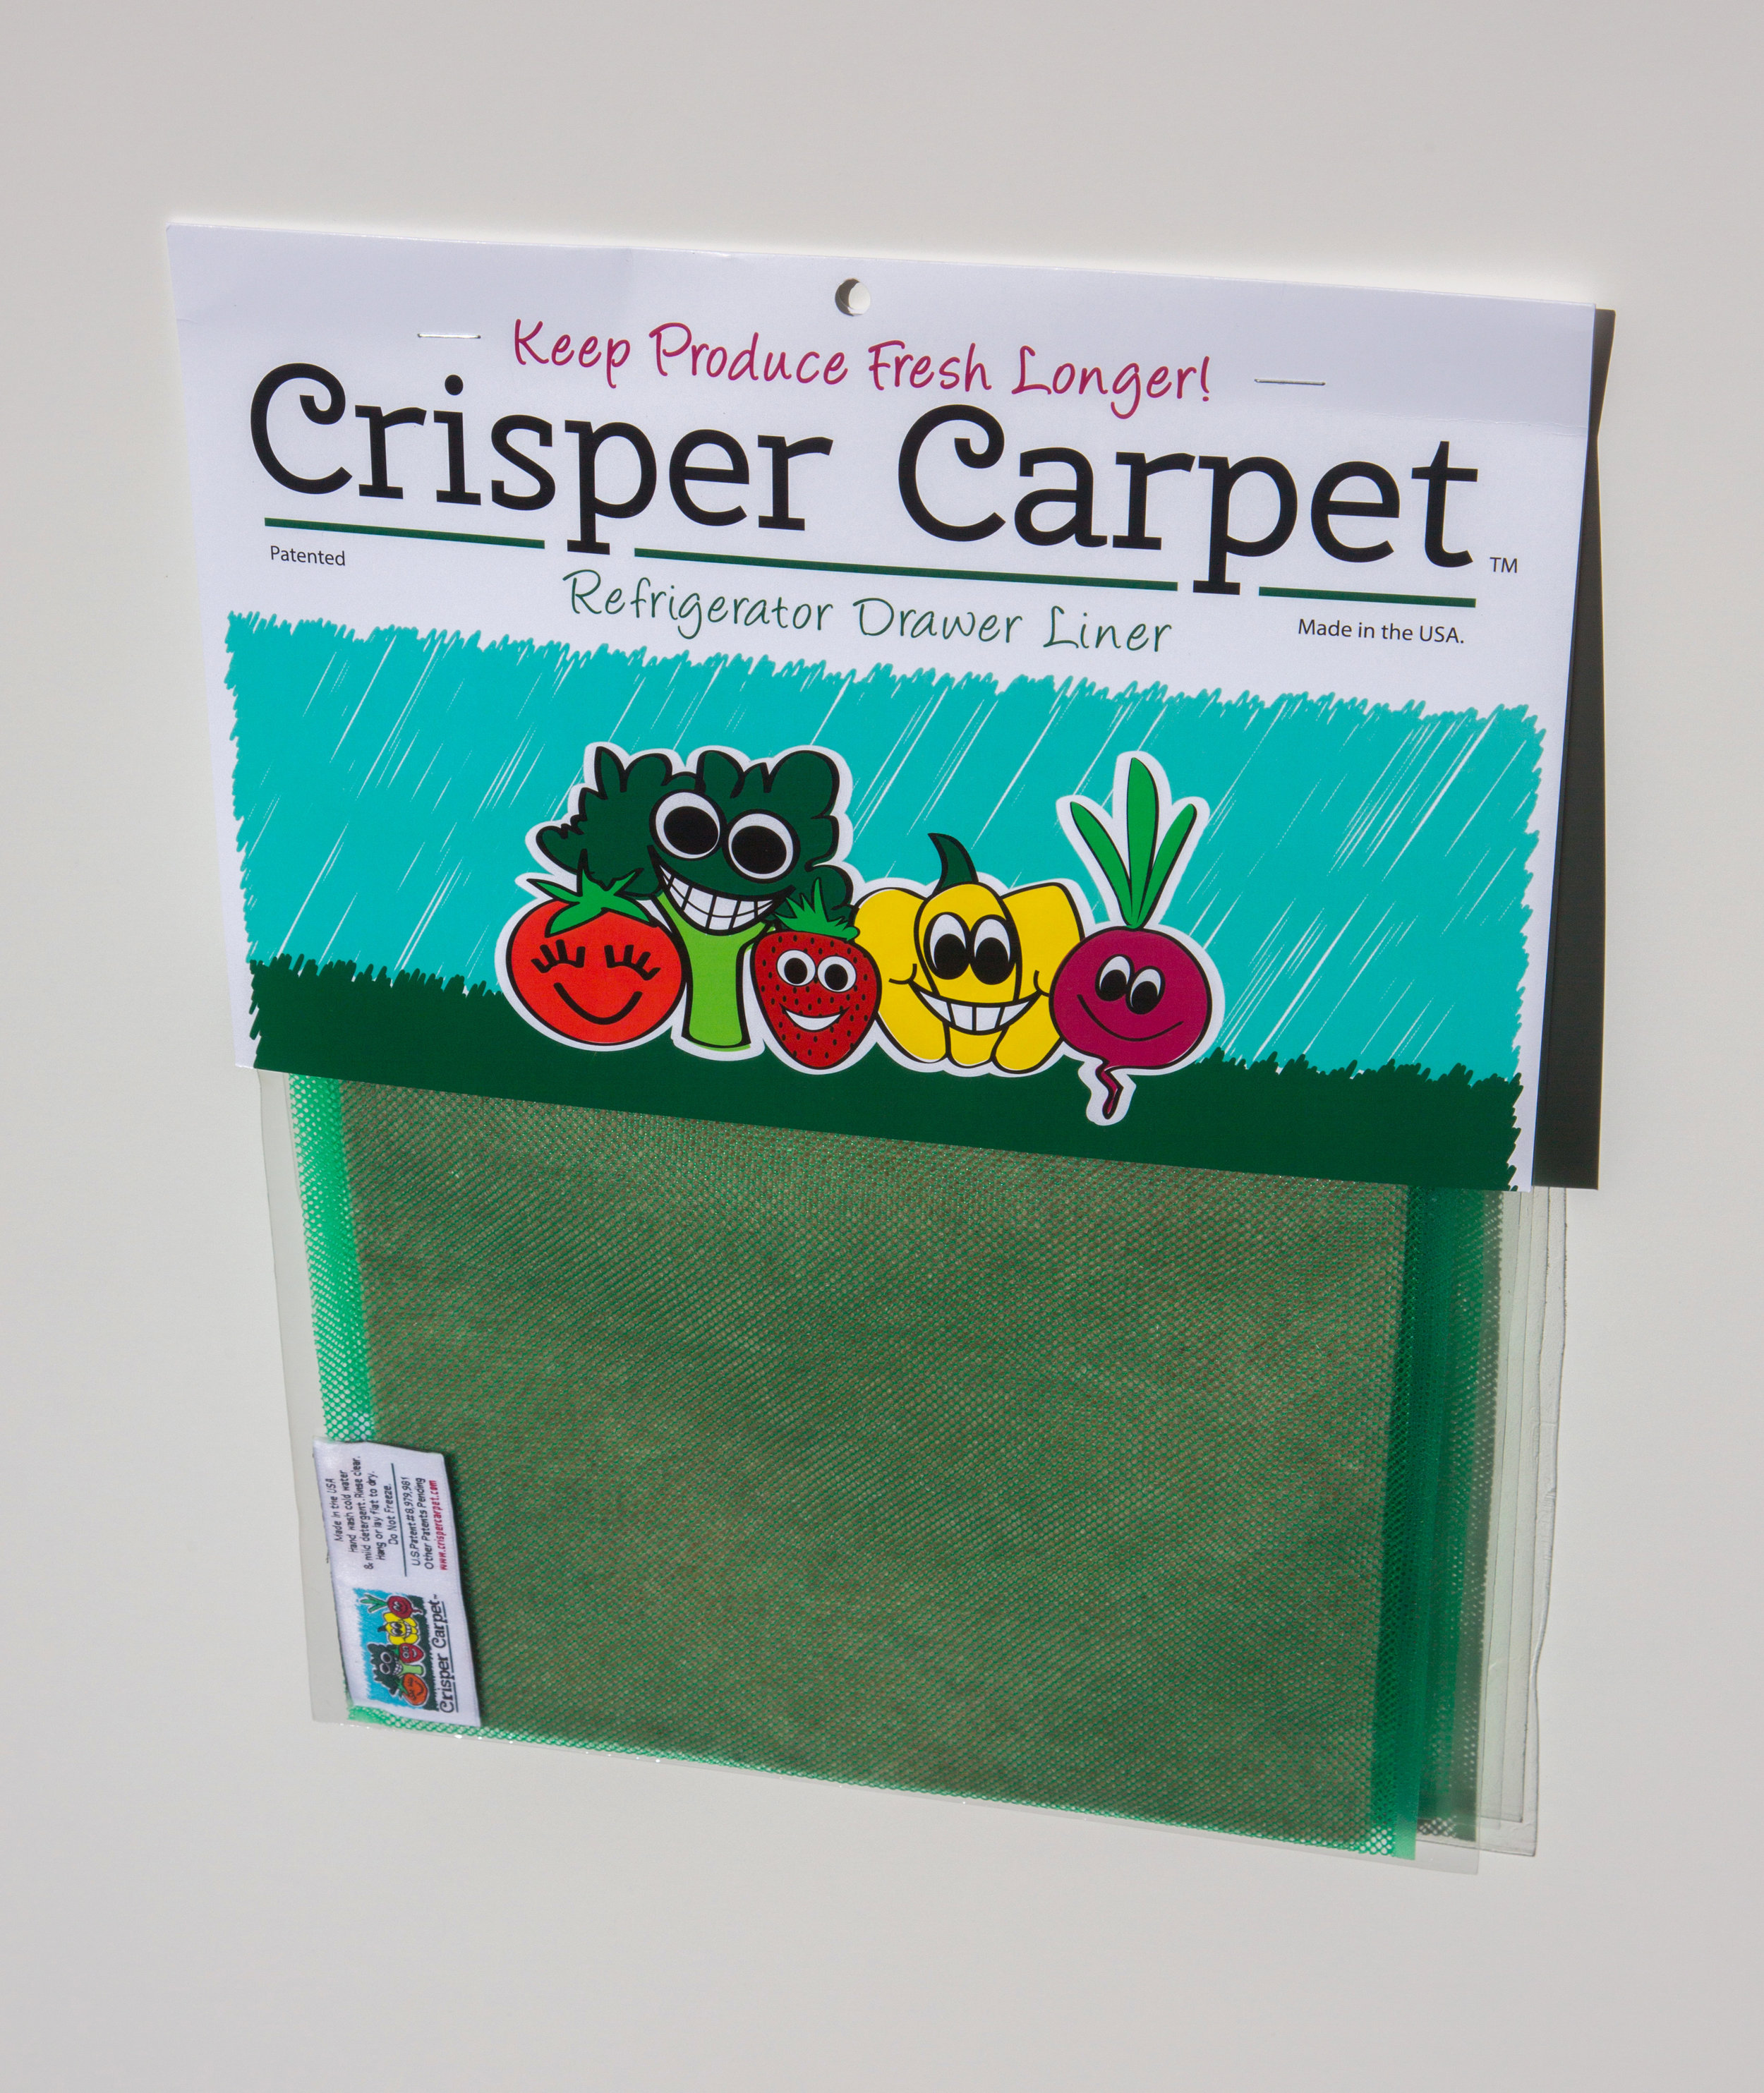 Don't let produce go to waste! - Grab your 2-pack Crisper Carpet Refrigerator Drawer Liner today!